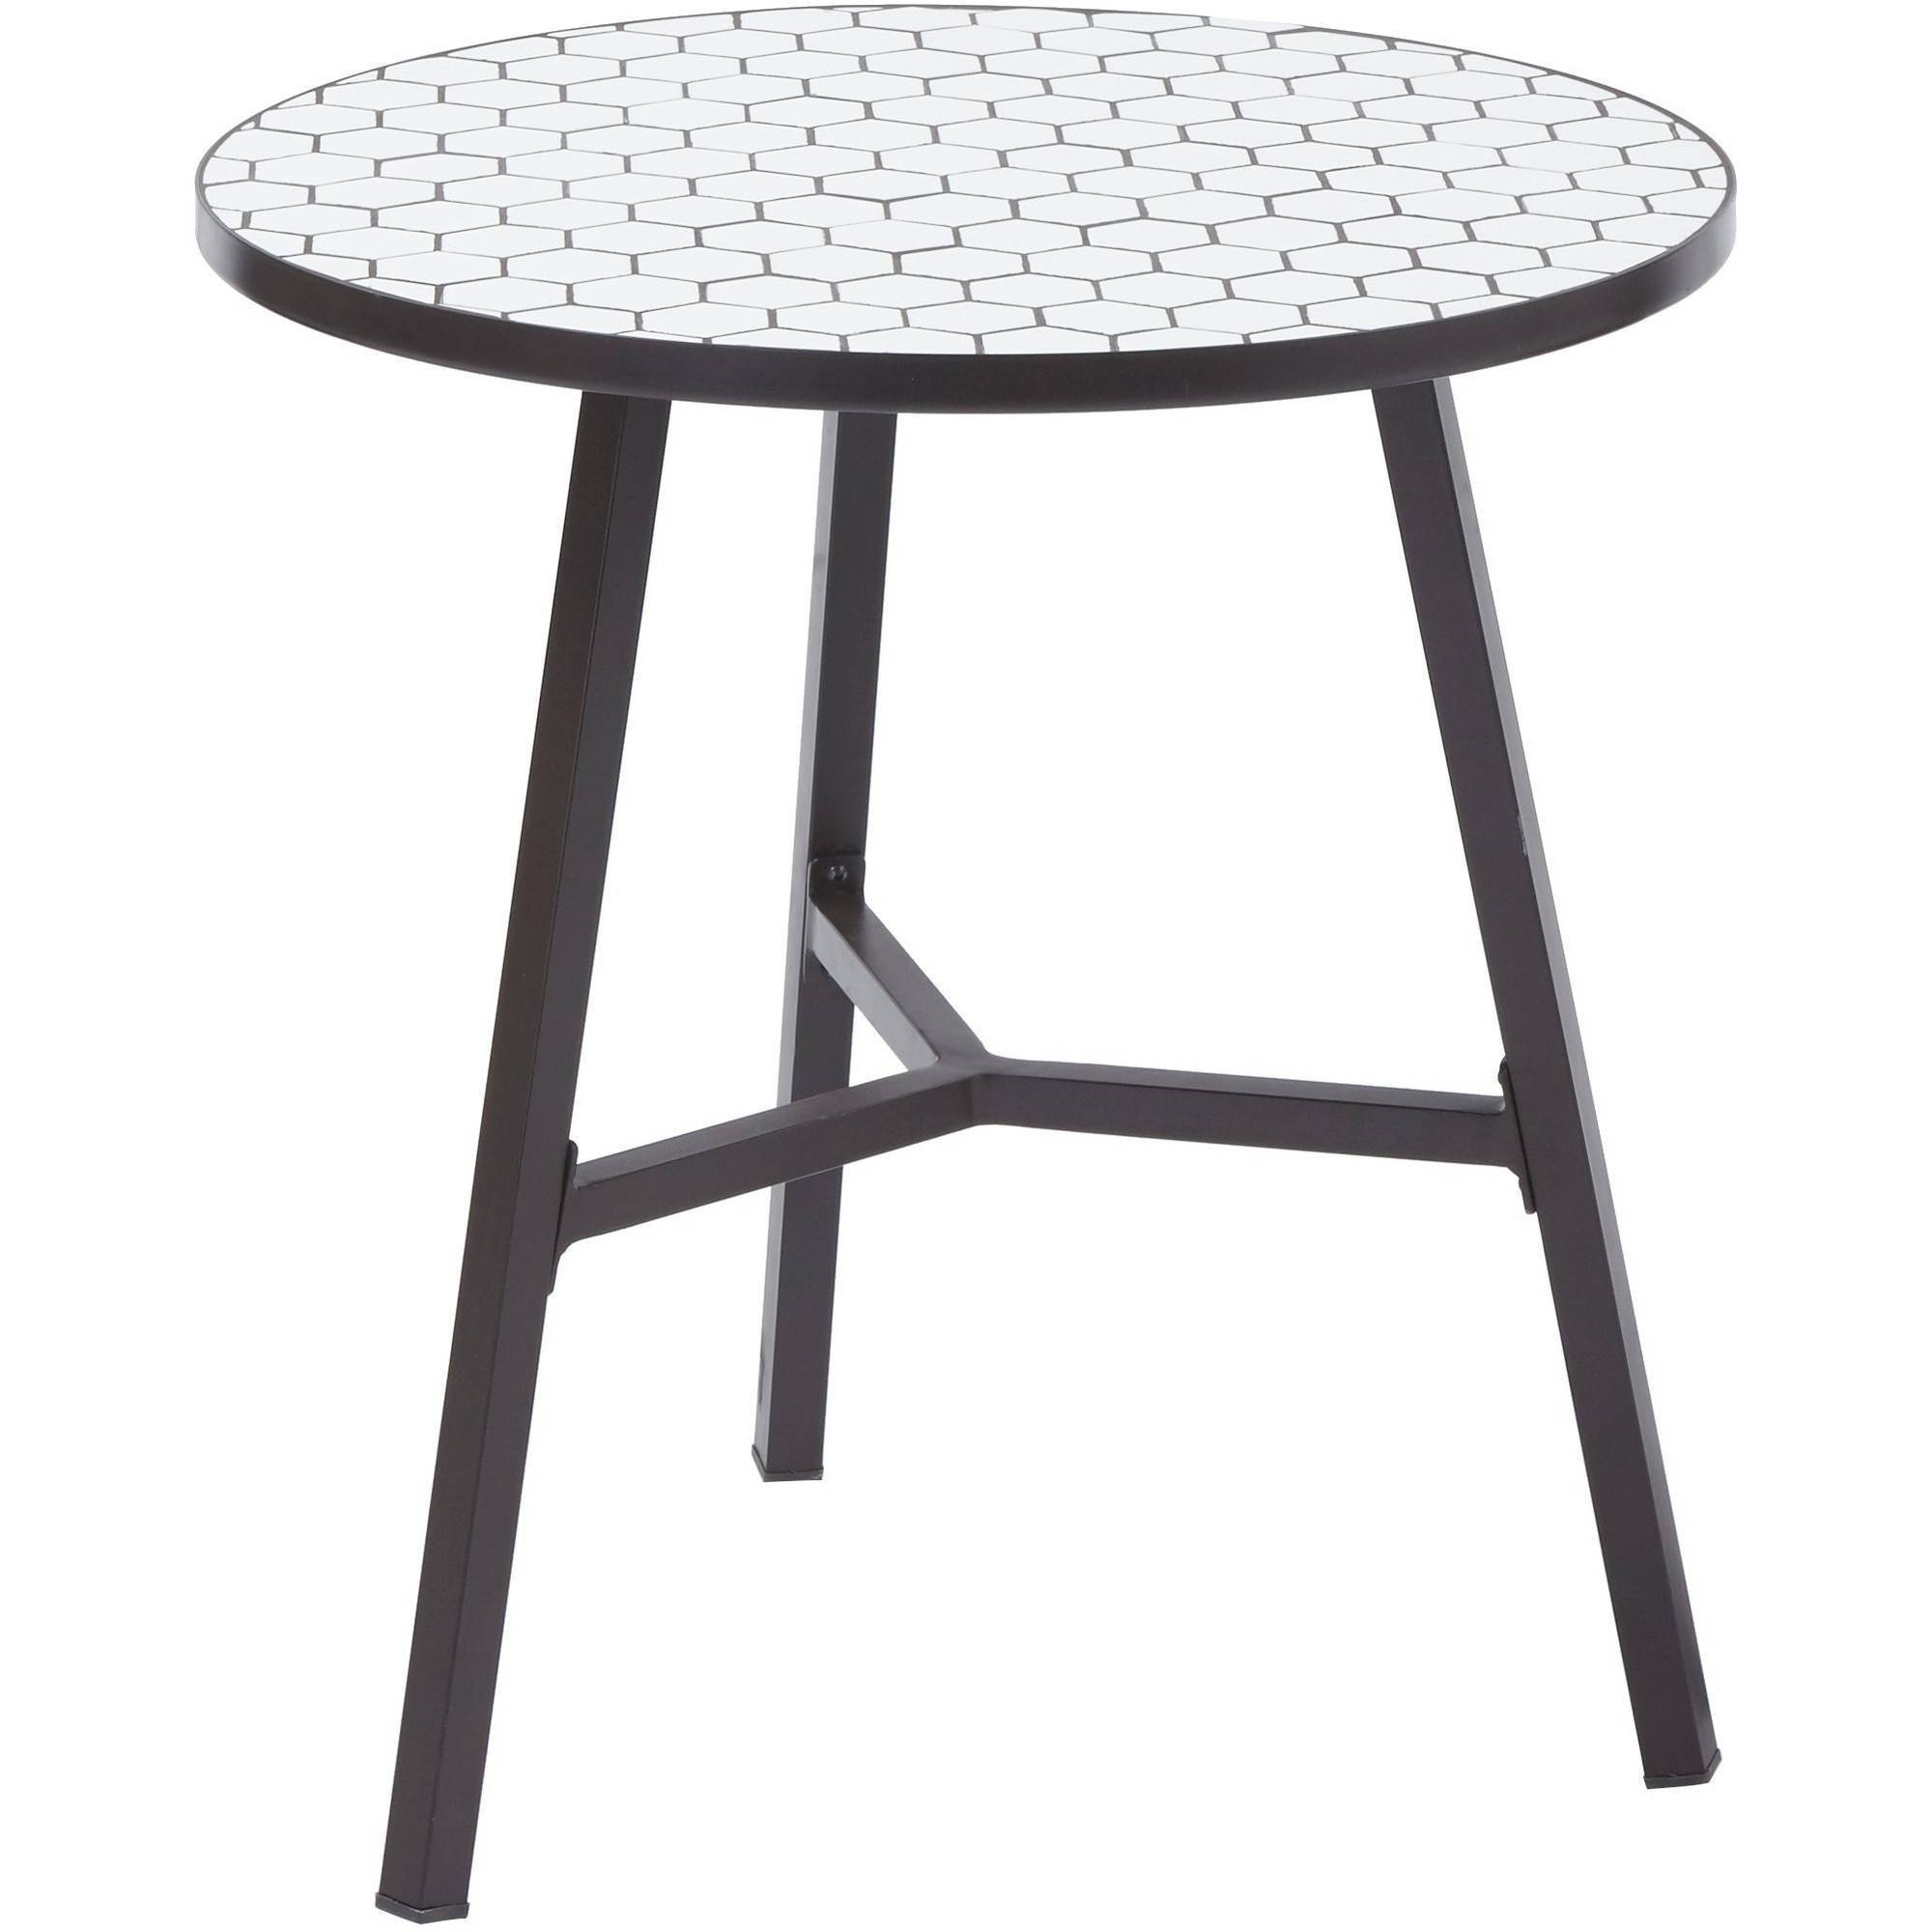 outdoor table and chairs patio furniture - walmart.com UTWIPEP